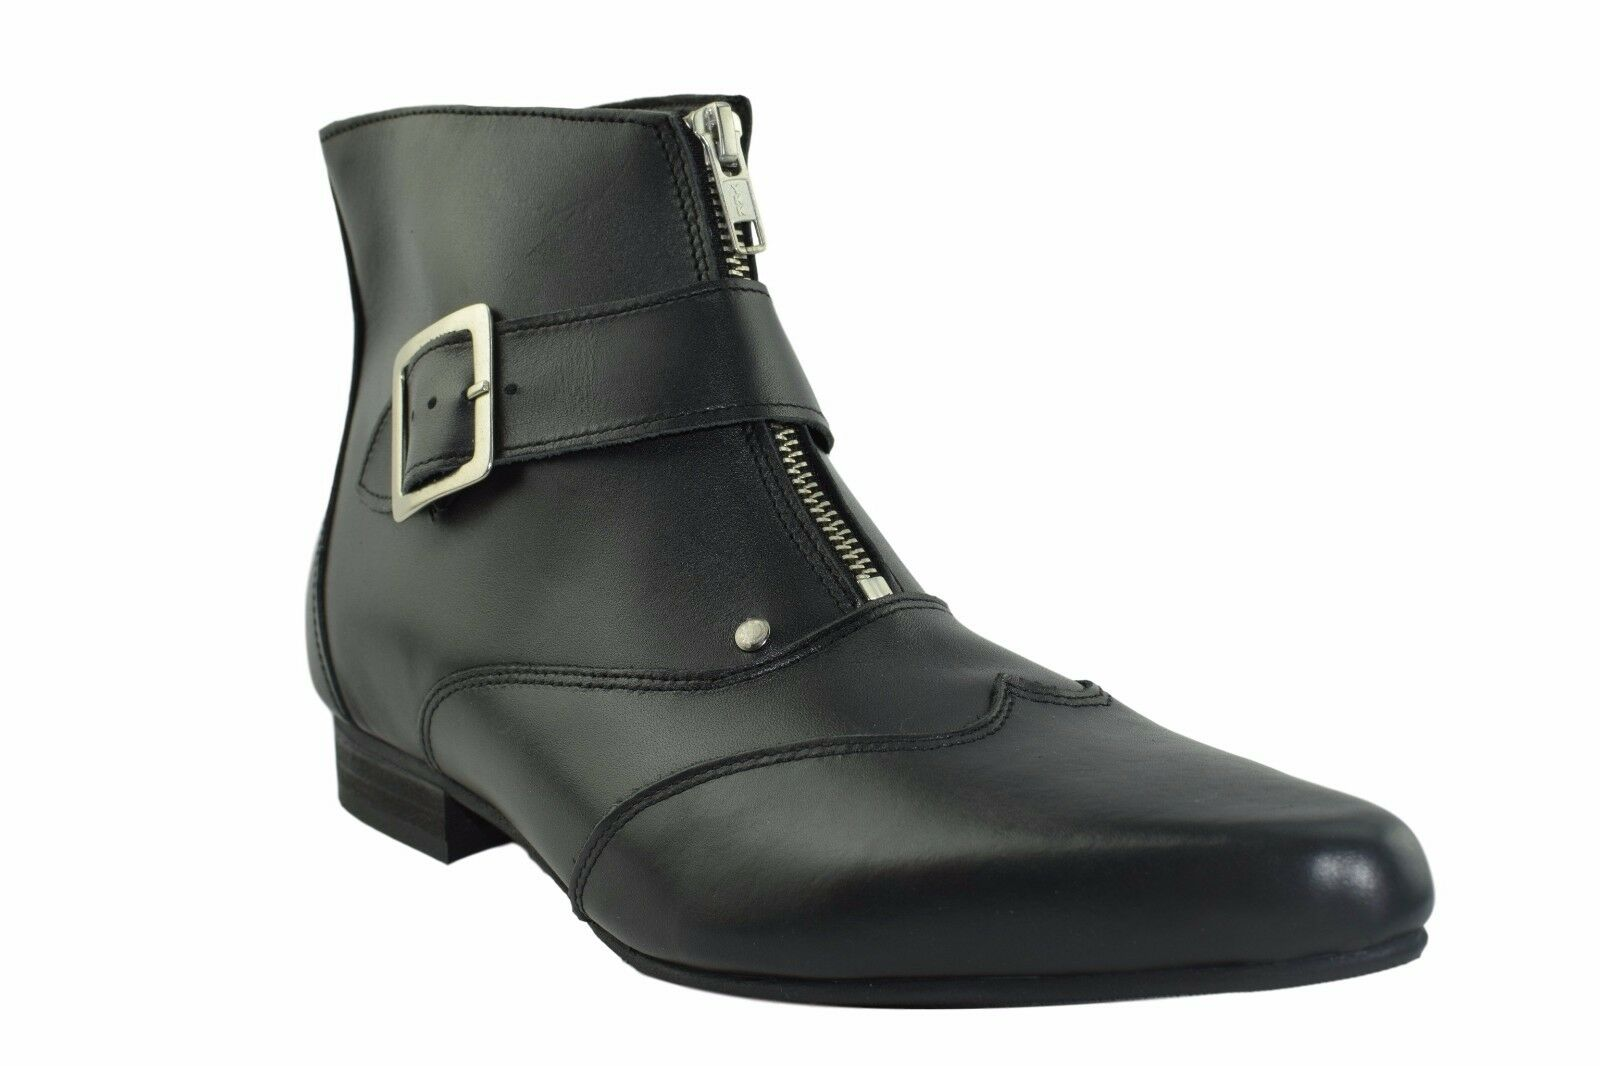 Steel Ground Black Leather Winklepicker Boots Buckle Pointed Ankle Boot Sb004Z92